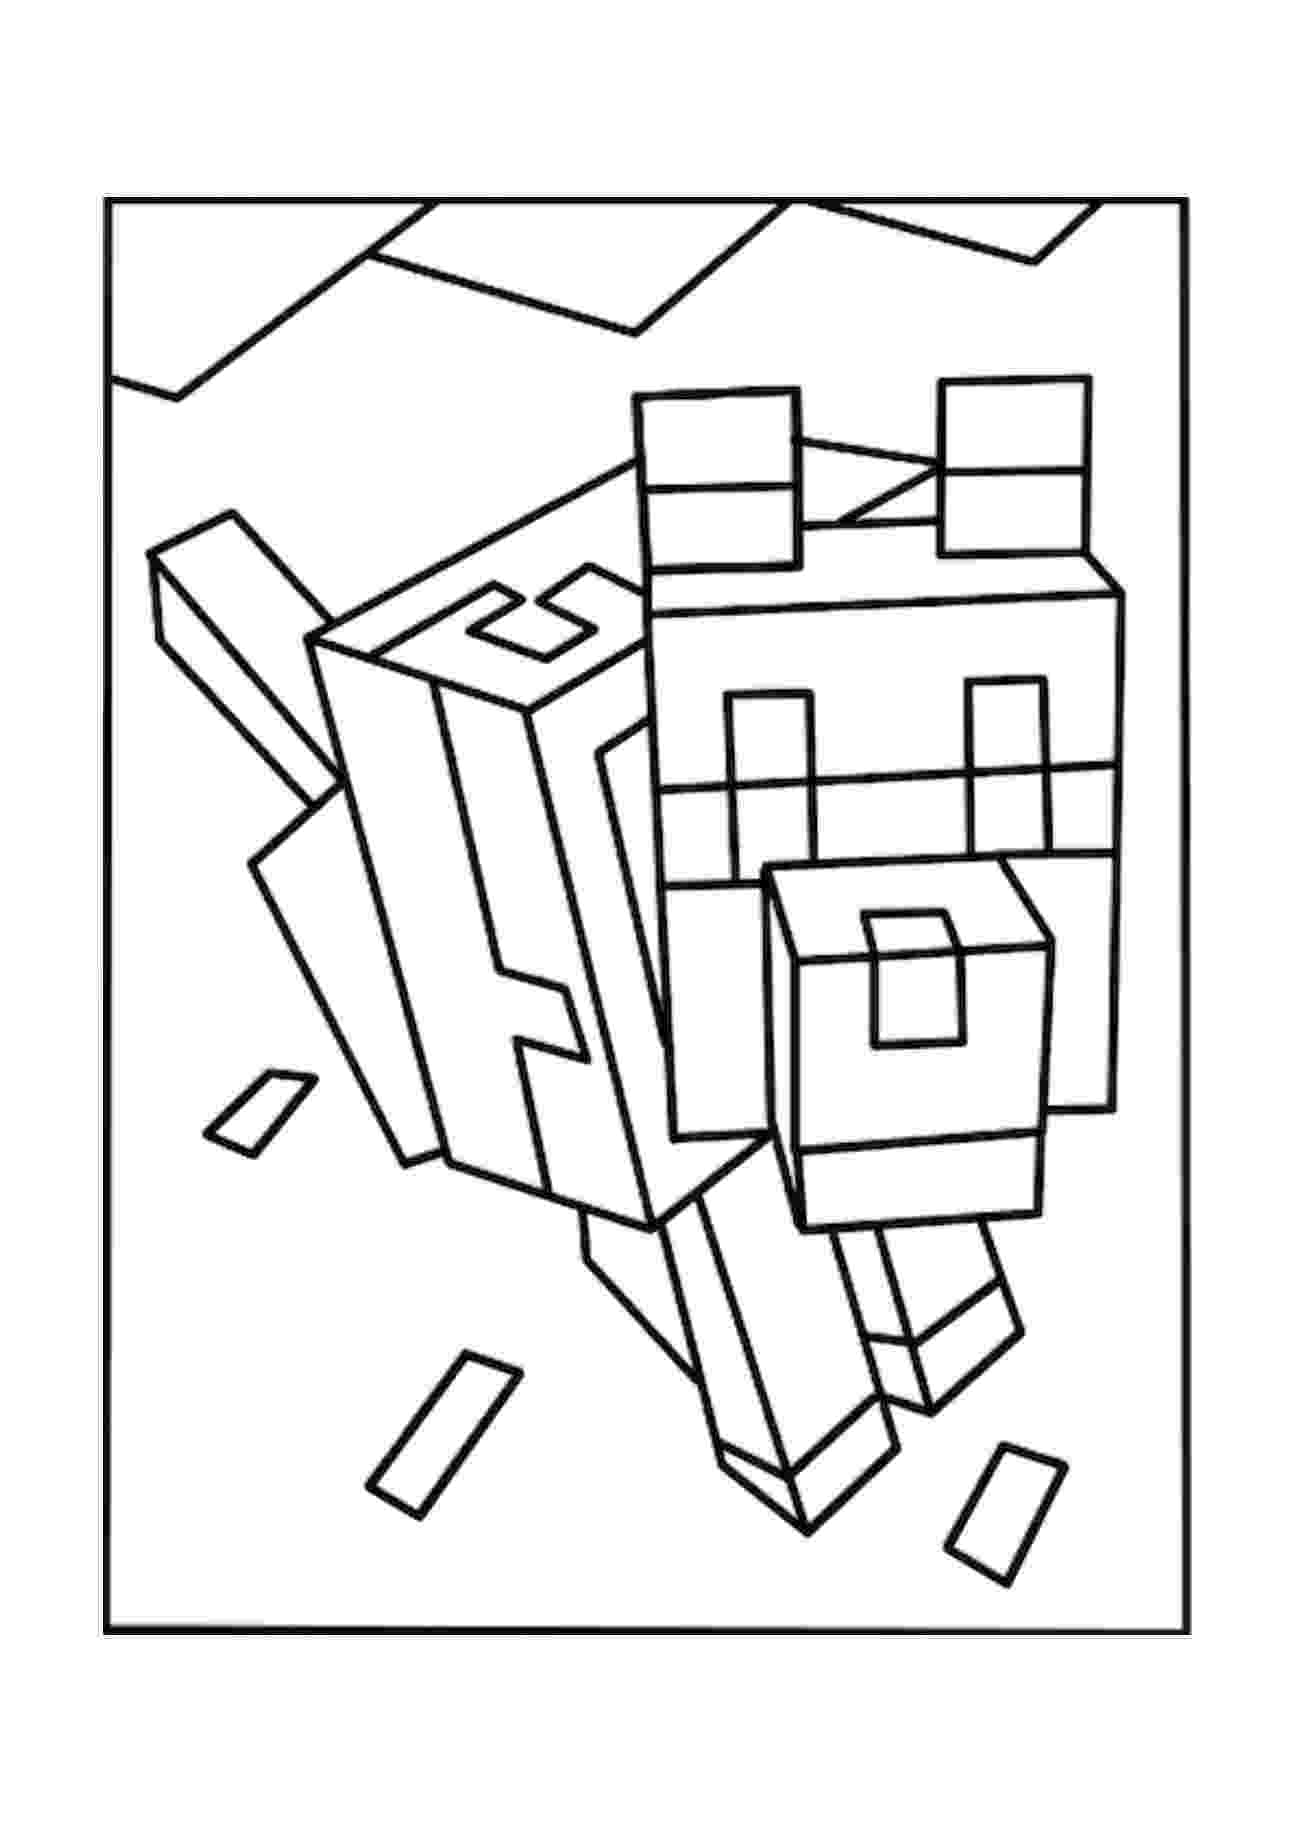 minecraft animal coloring pages minecraft animal coloring pages getcoloringpagescom coloring animal minecraft pages 1 1